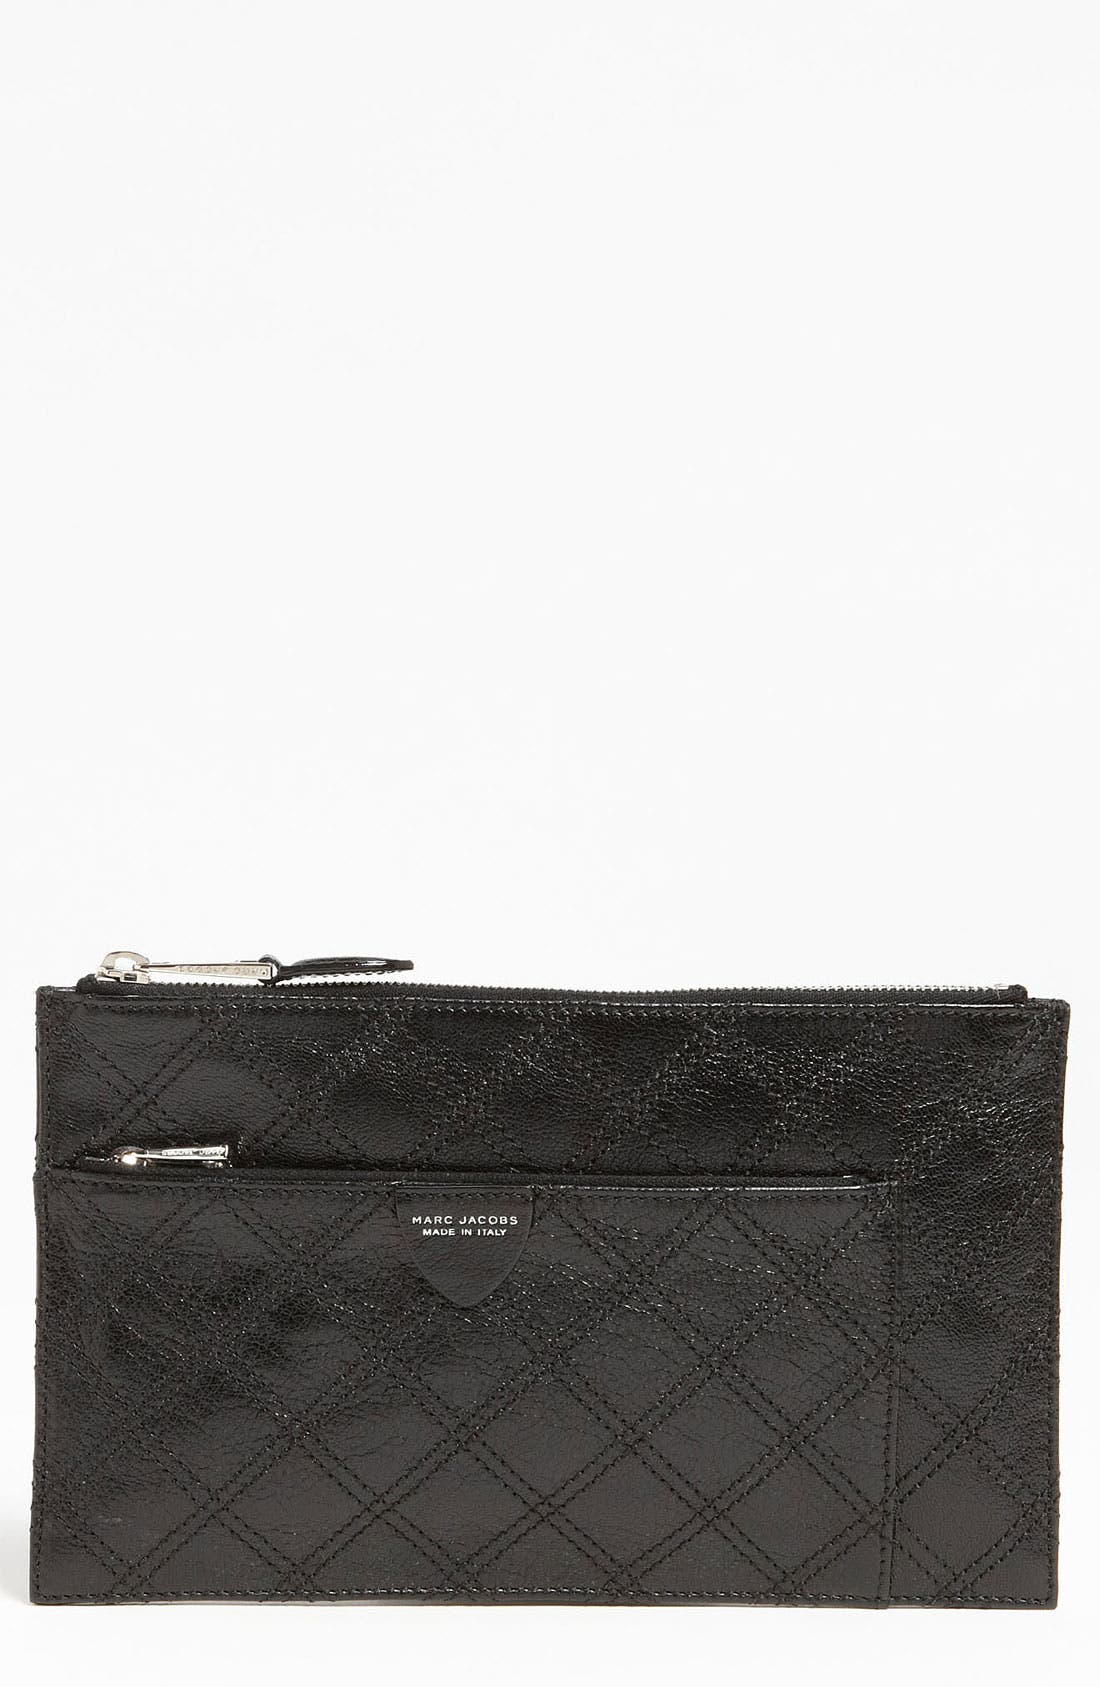 Alternate Image 1 Selected - MARC JACOBS 'Small' Leather Pouch